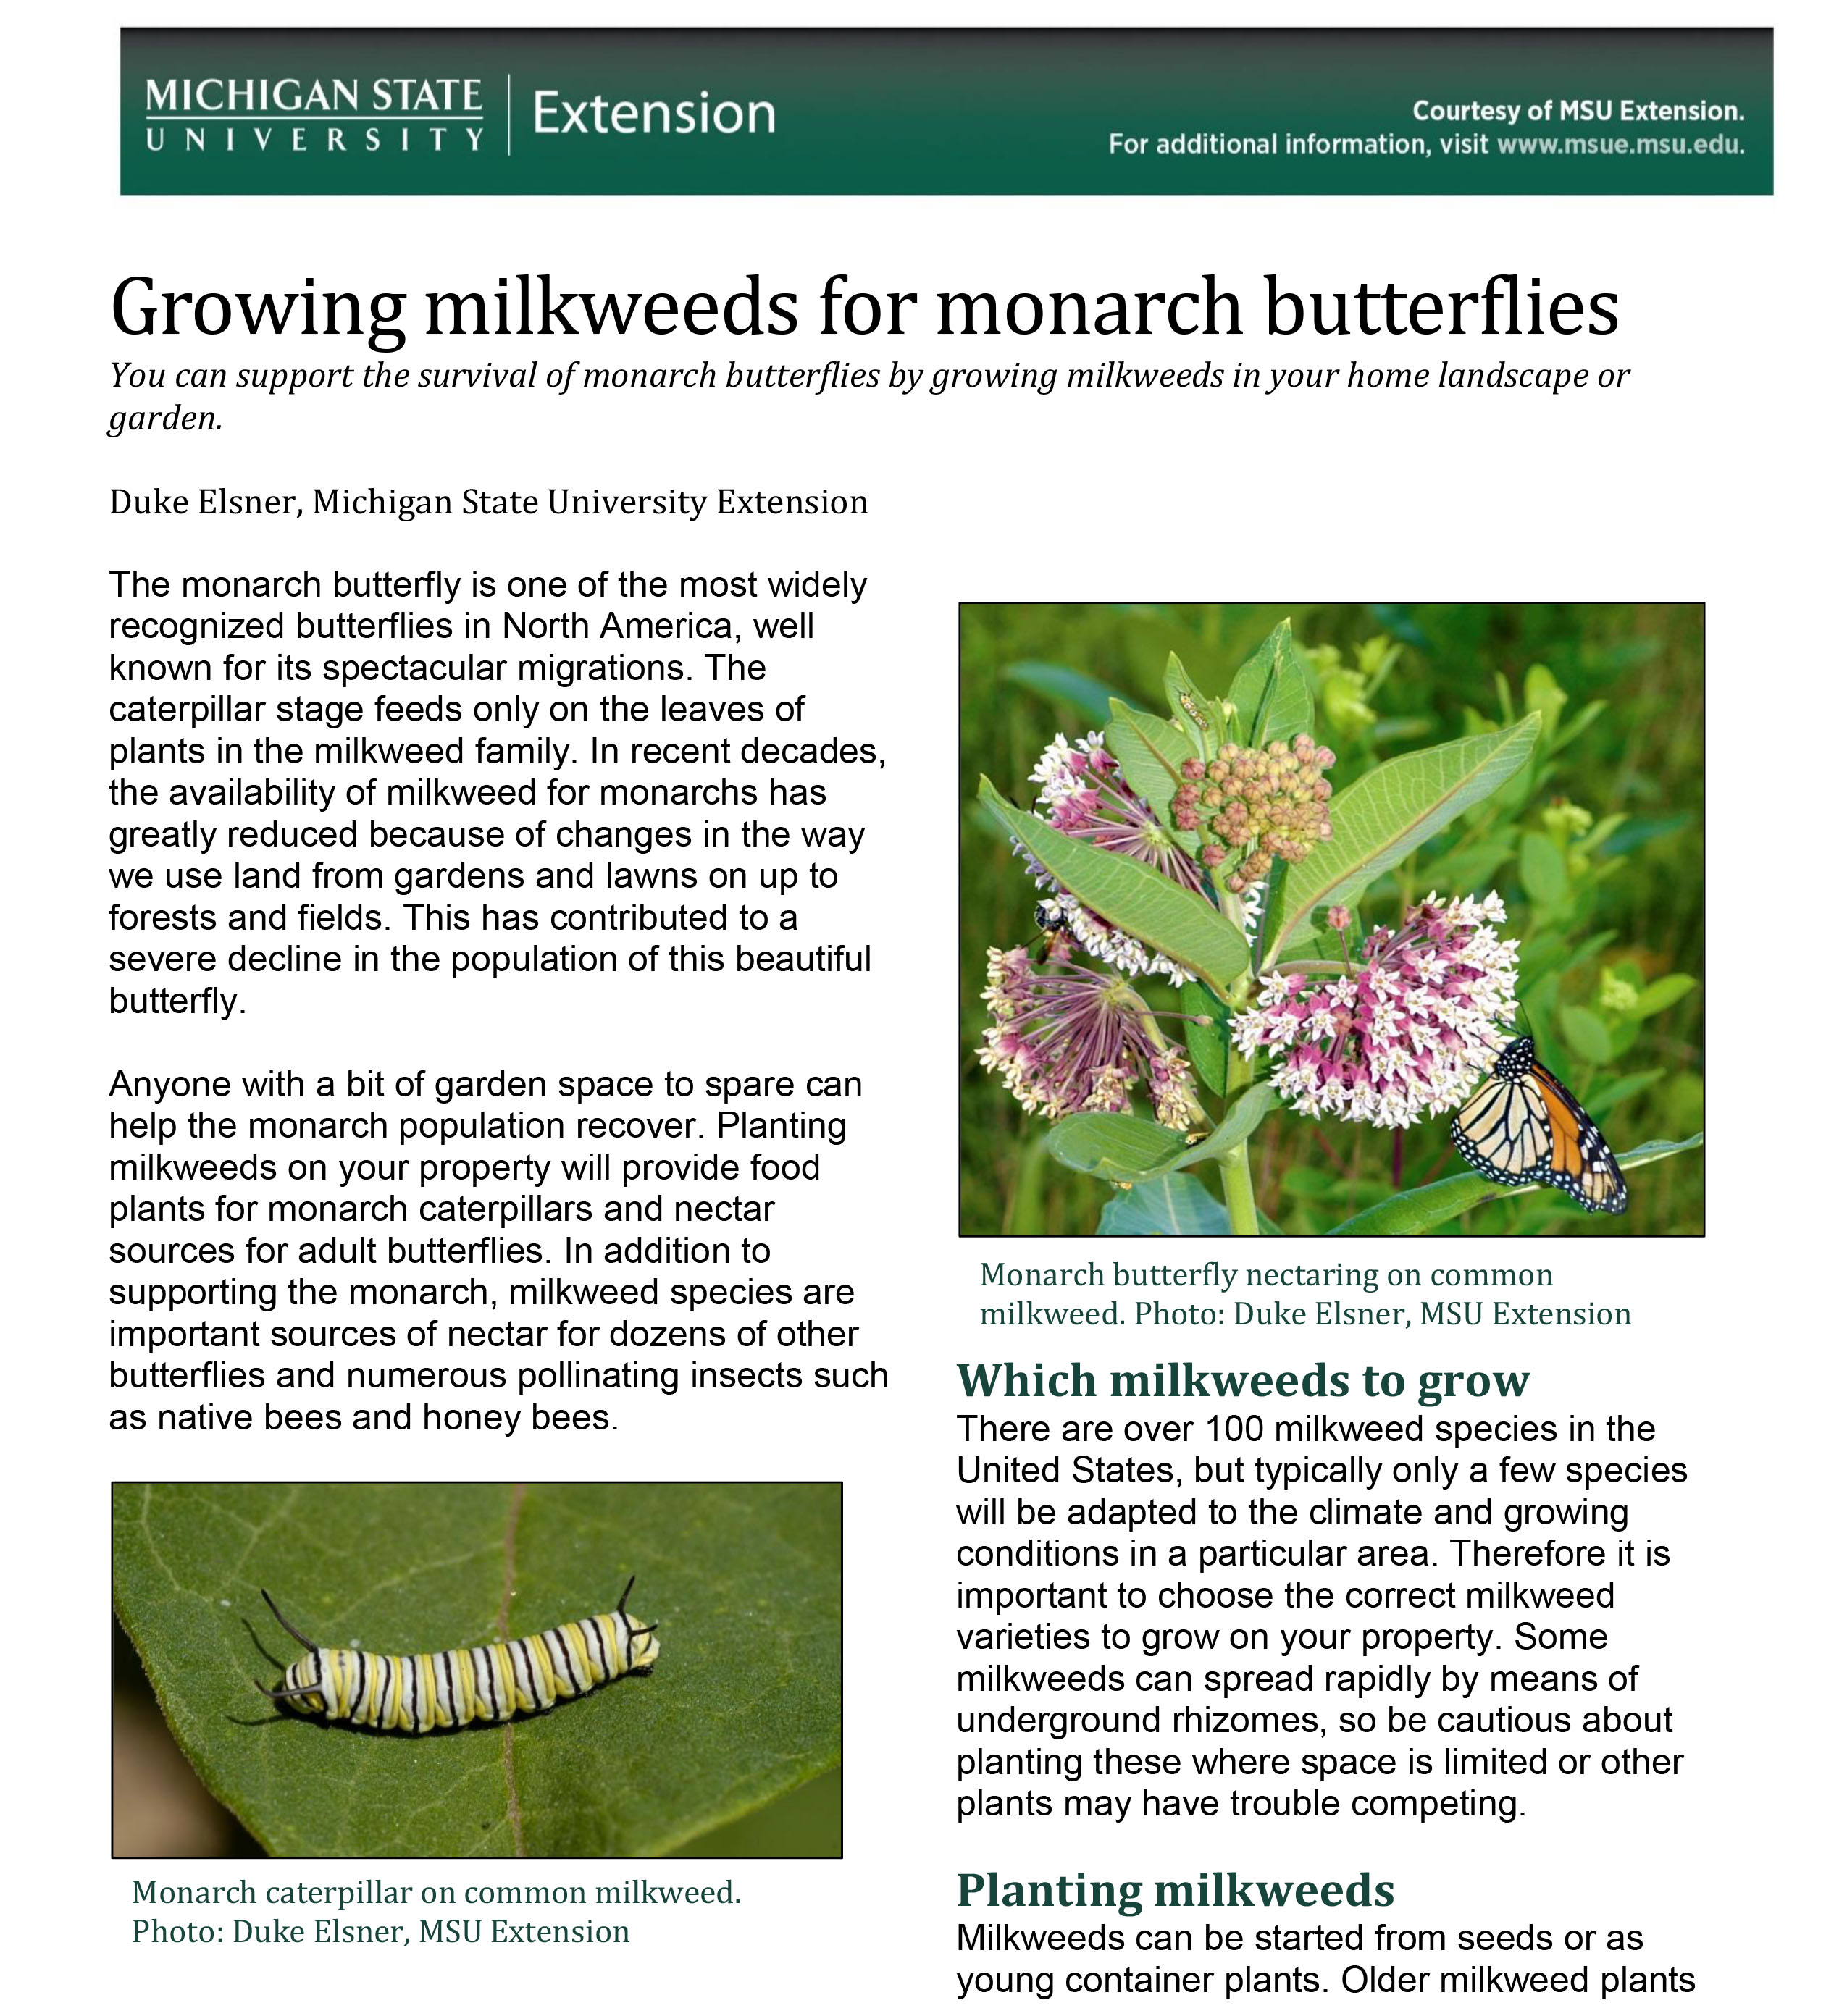 PDF cover of Growing Milkweeds for Monarch Butterflies